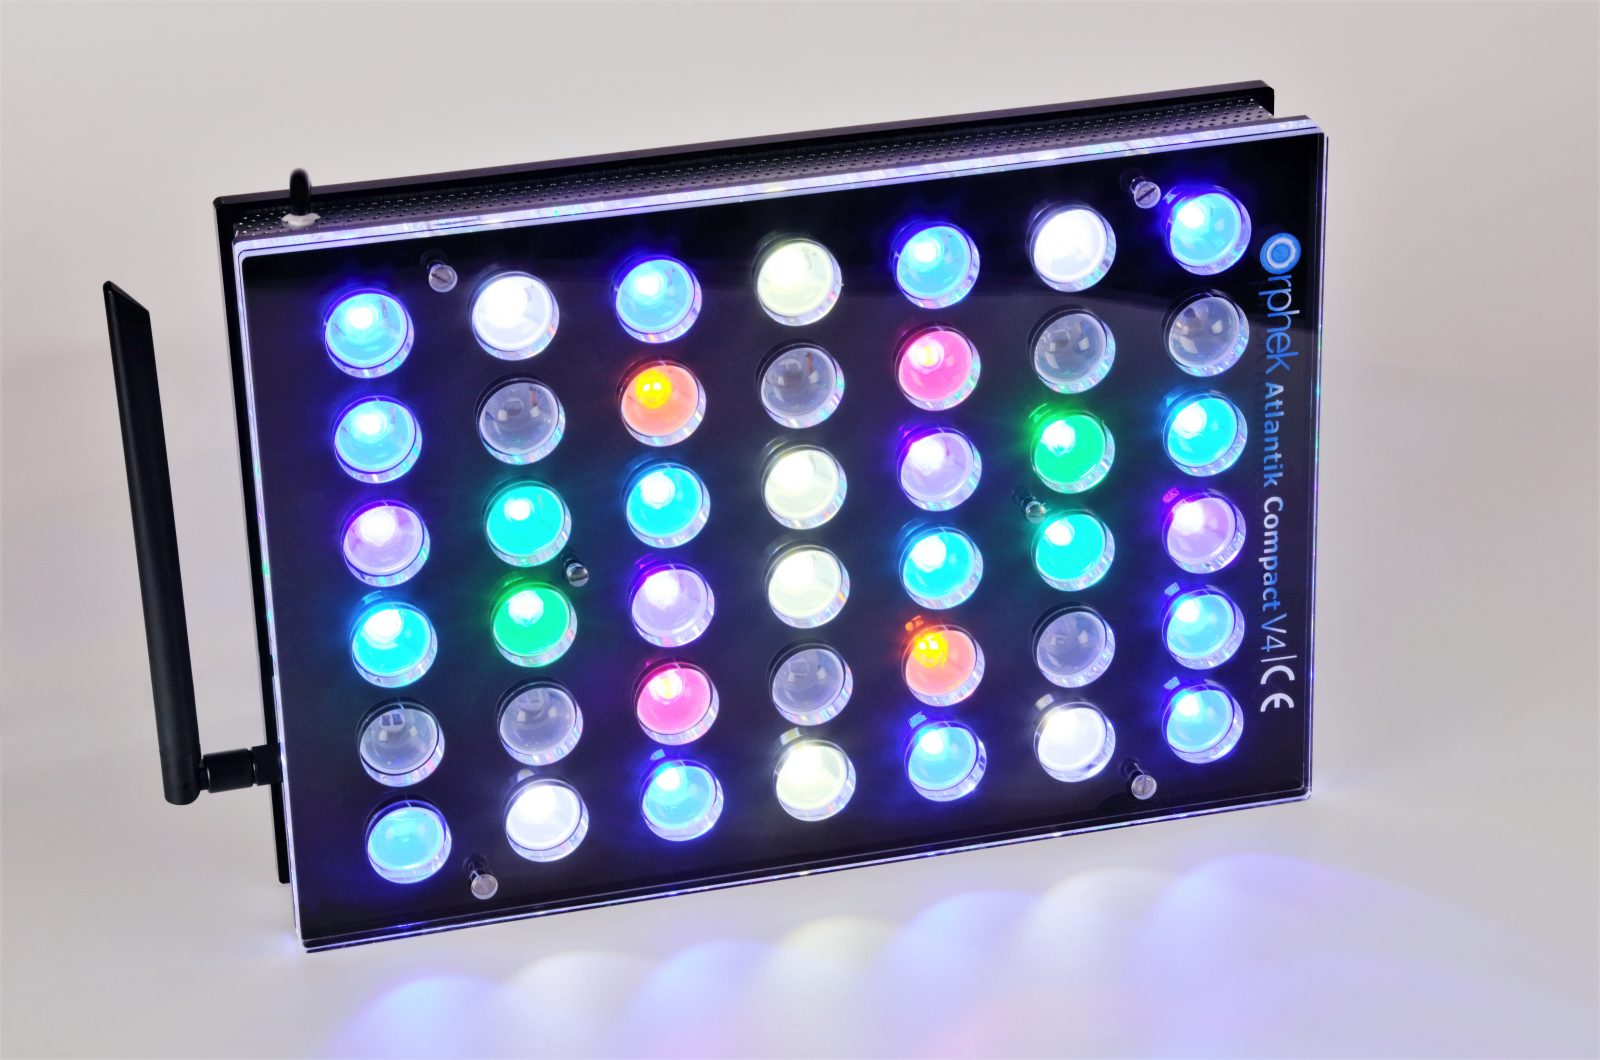 Orphek Aquarium LED Lighting Atlantik Compact V4 light on channel 1+2+4